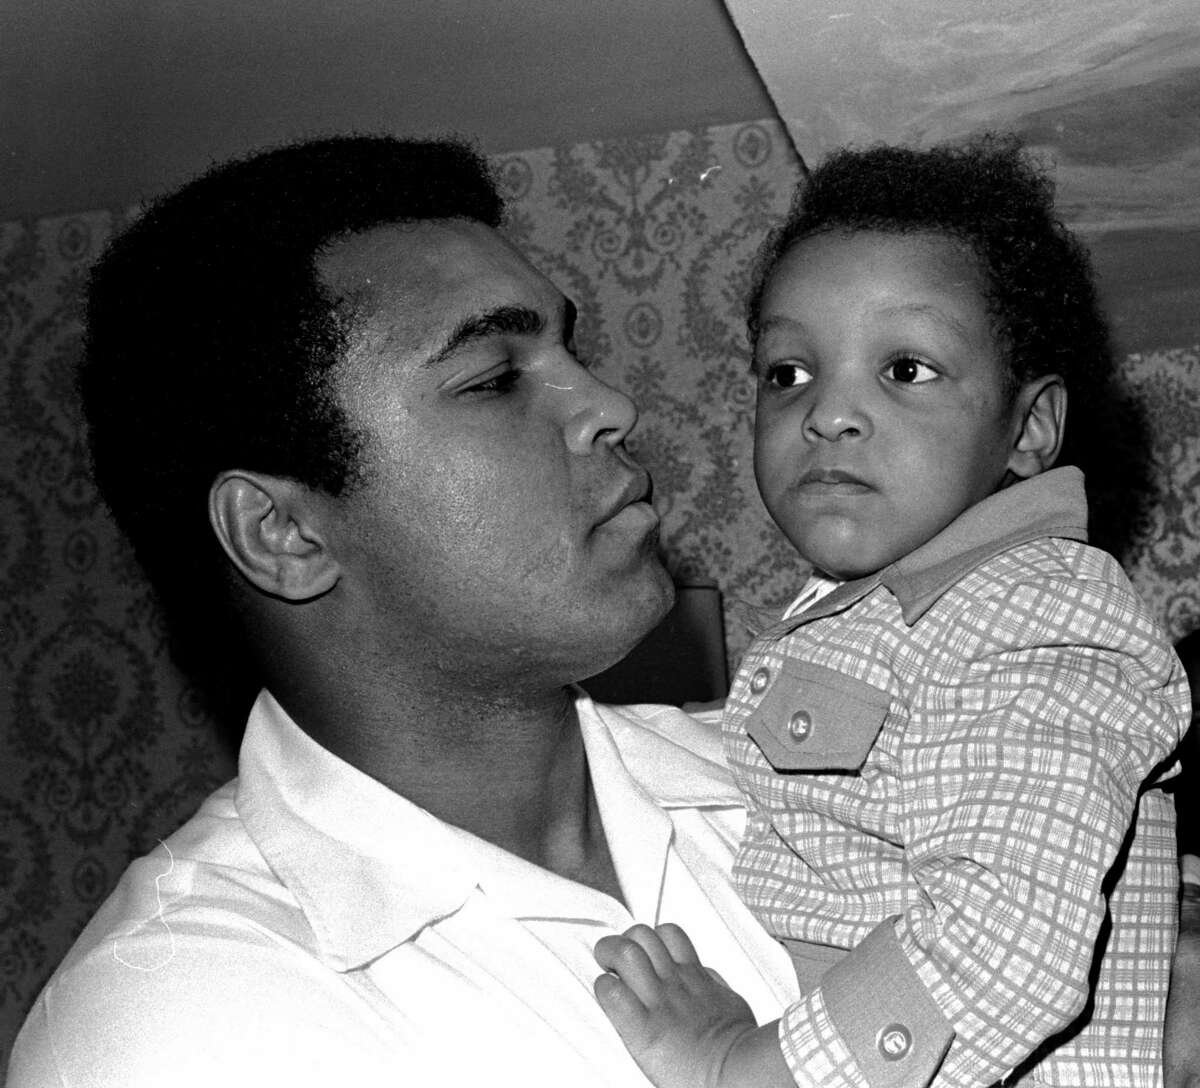 In this April 15, 1975 photo, Heavyweight boxing champion Muhammad Ali, and Little Muhammad Ali, his 2 1/2 year old son, arrive at Miami Beach, Fla. Muhammad Ali's son, who bears the boxing great's name, was detained by immigration officials at a Florida airport and questioned about his ancestry and religion in what amounted to unconstitutional profiling, a family friend said on Feb. 25, 2017.